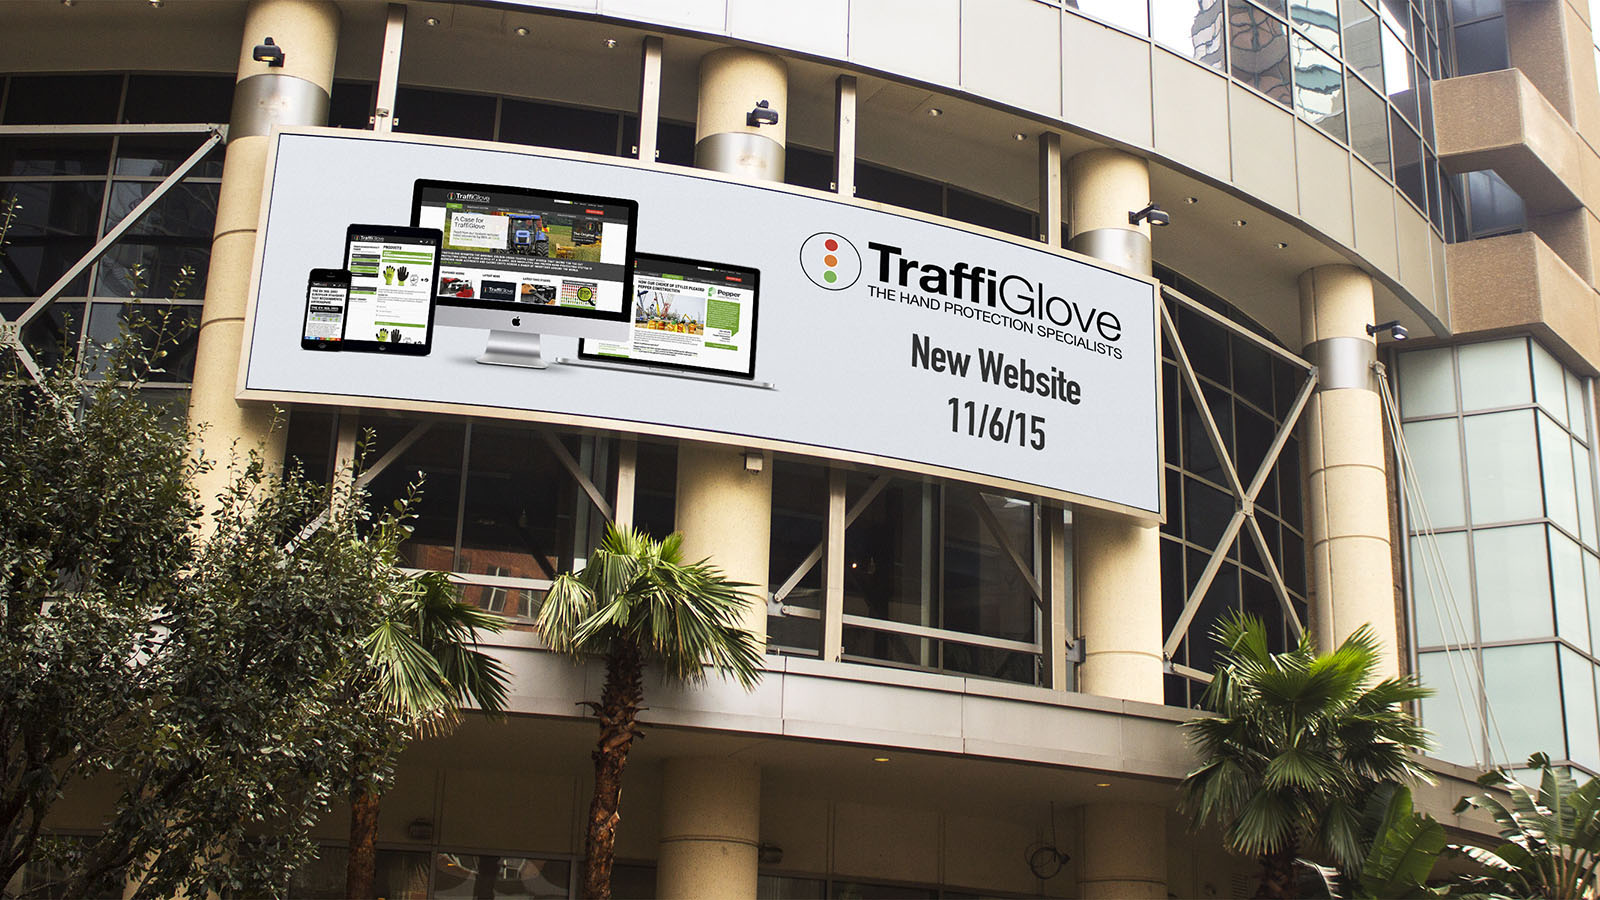 A huge billboard advertising the launch of the new TraffiGlove website.